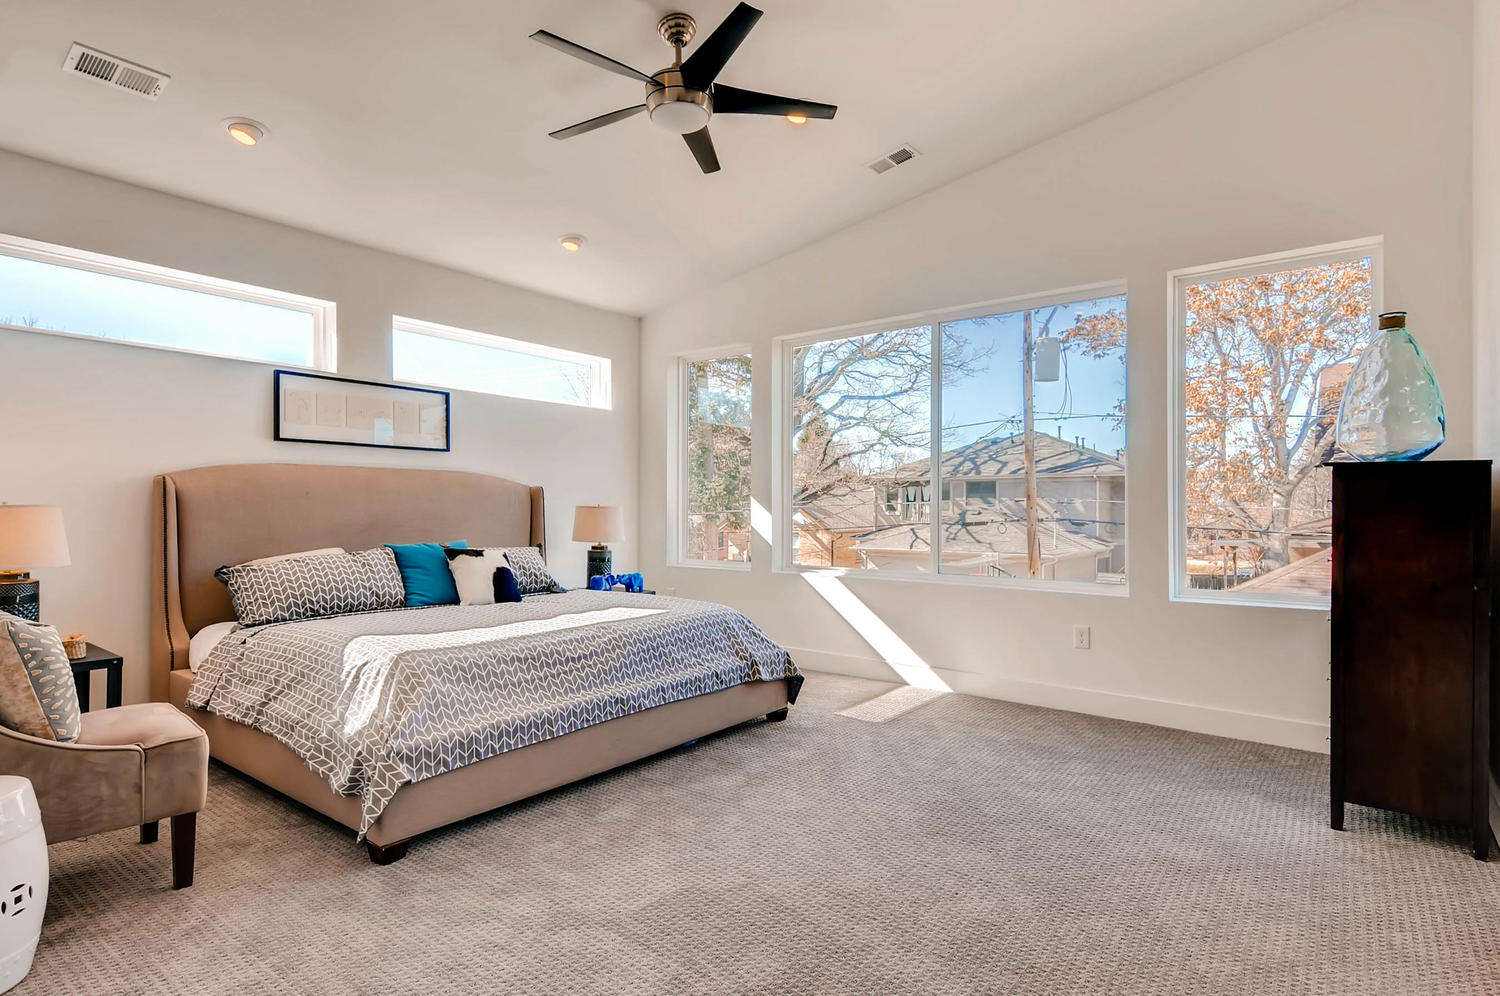 2273 Ivy St Denver Co 80207 Large 015 11 2nd Floor Master Bedroom 1500x997 72dpi Leo Rowen Group